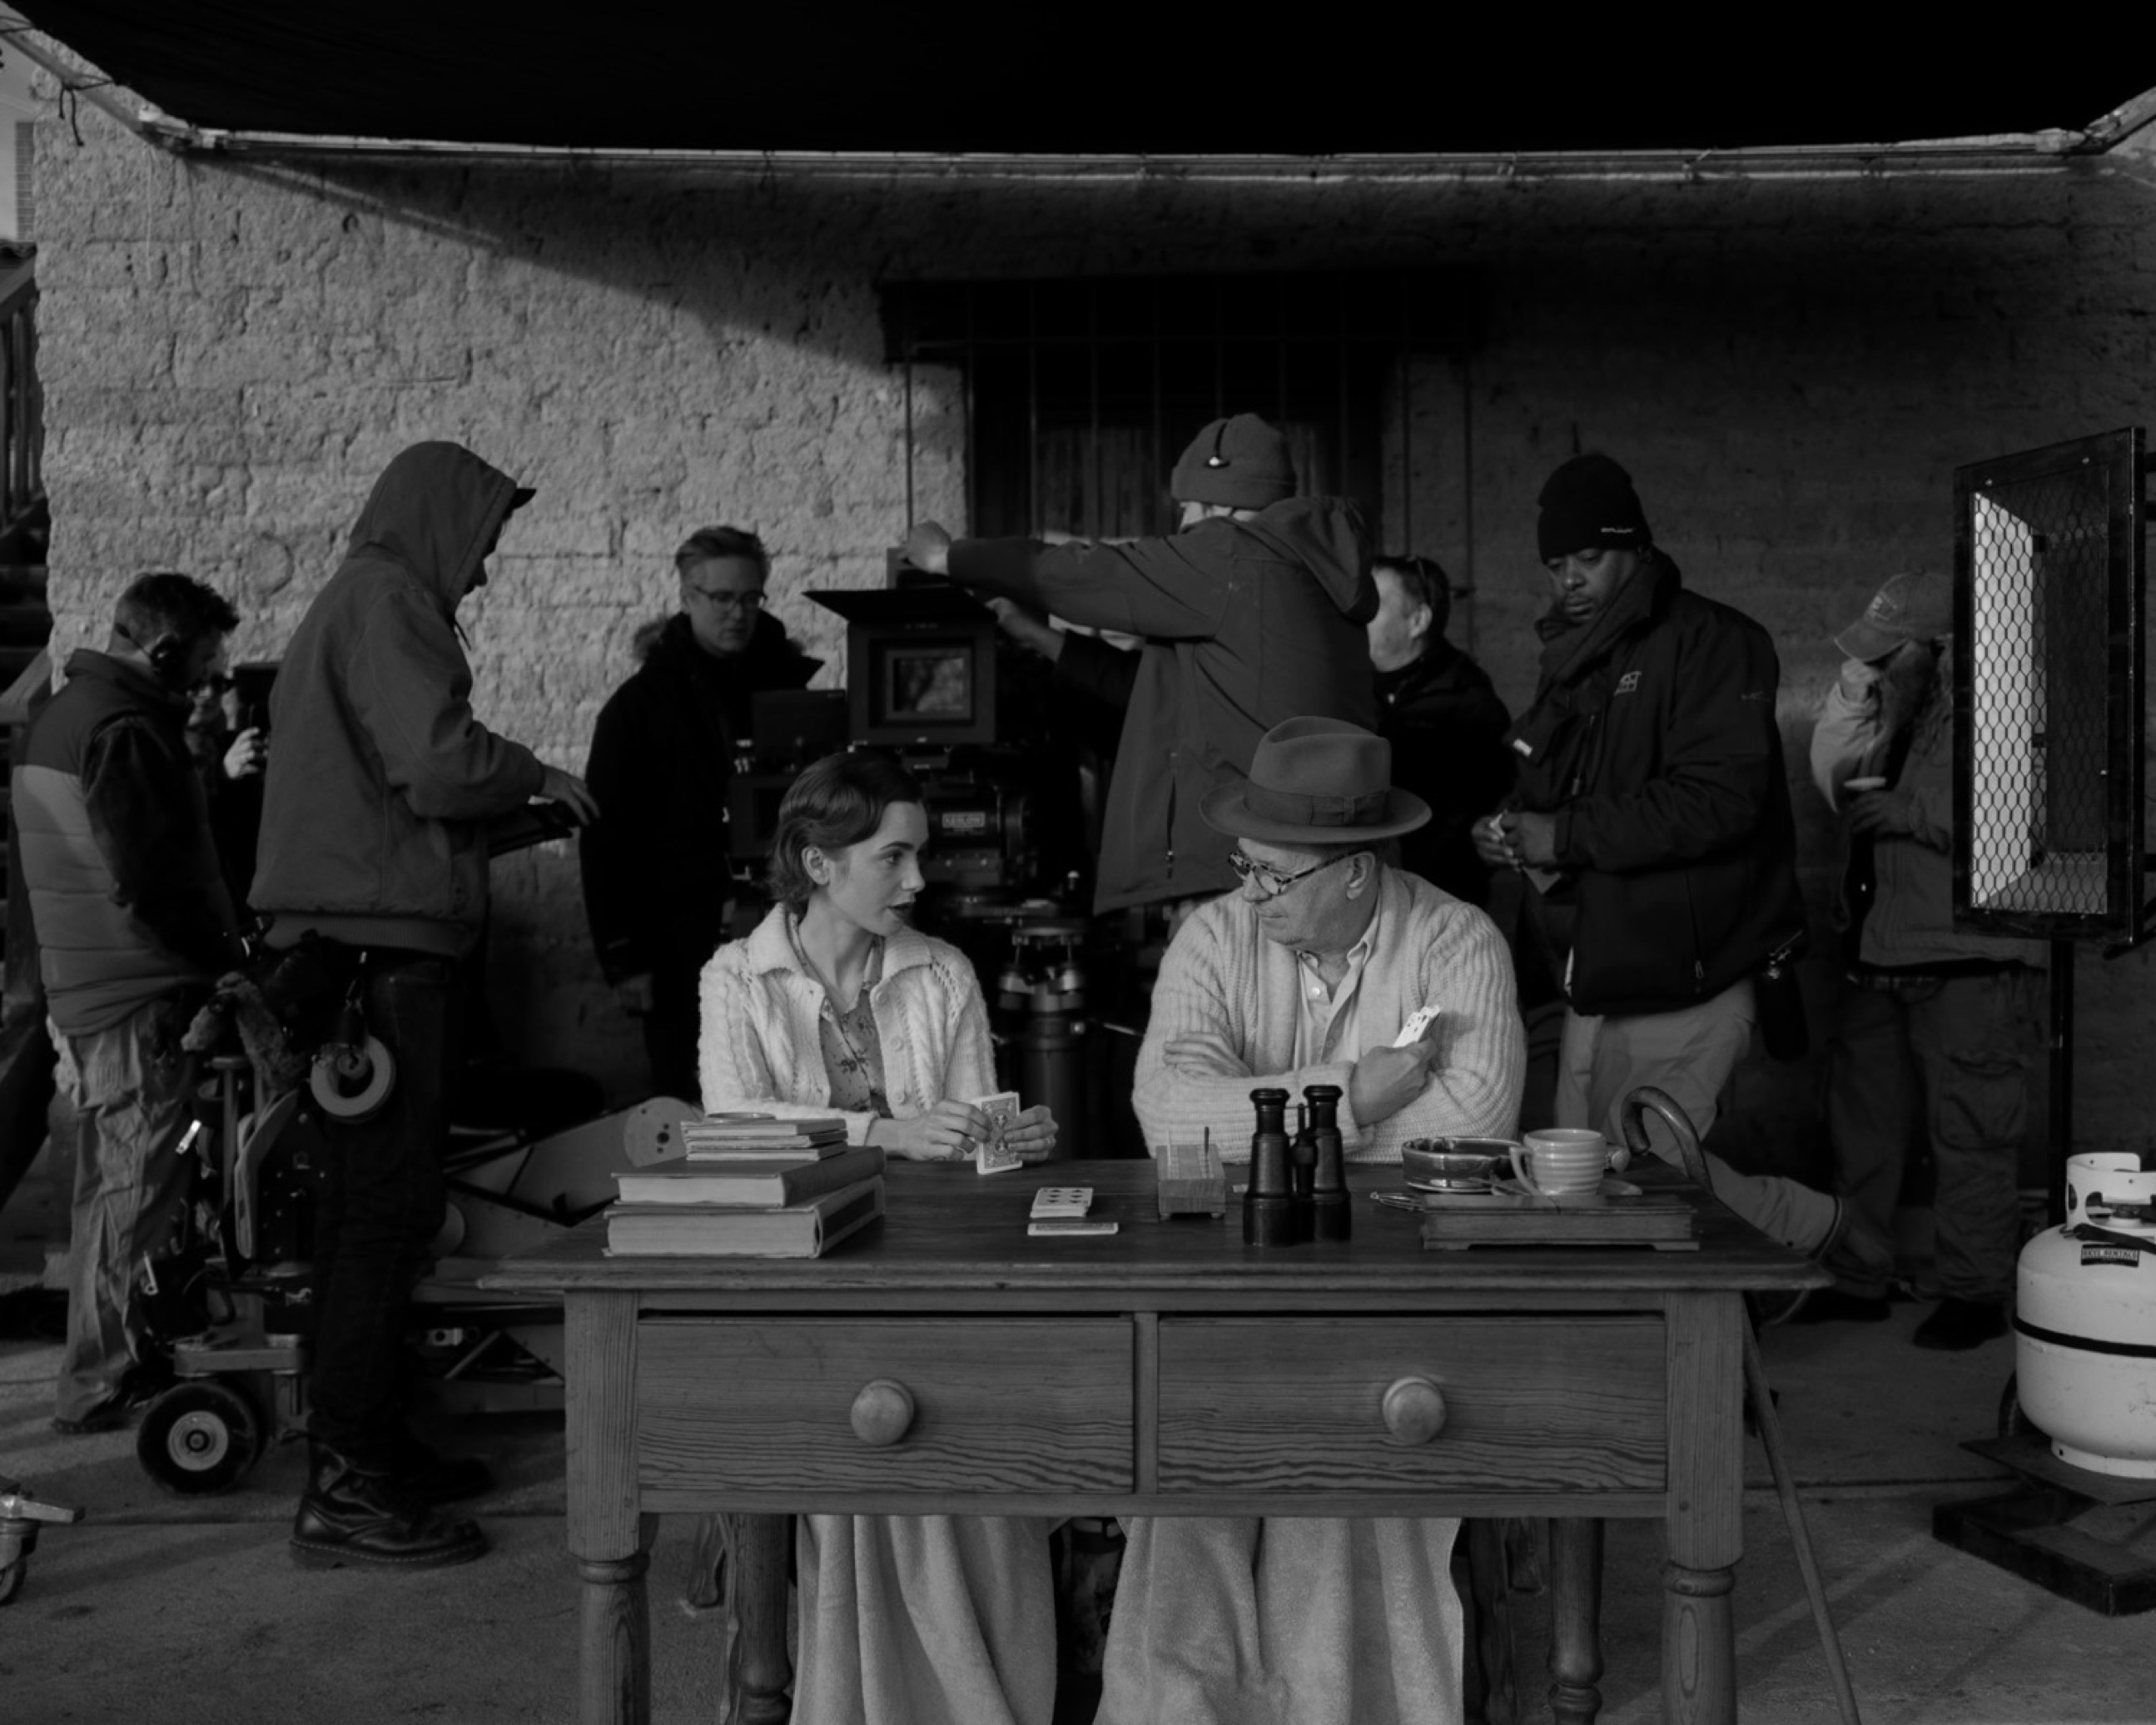 The actors sit beside each other at a desk, sporting cable-knit sweaters. Behind them, the crew gets to work.